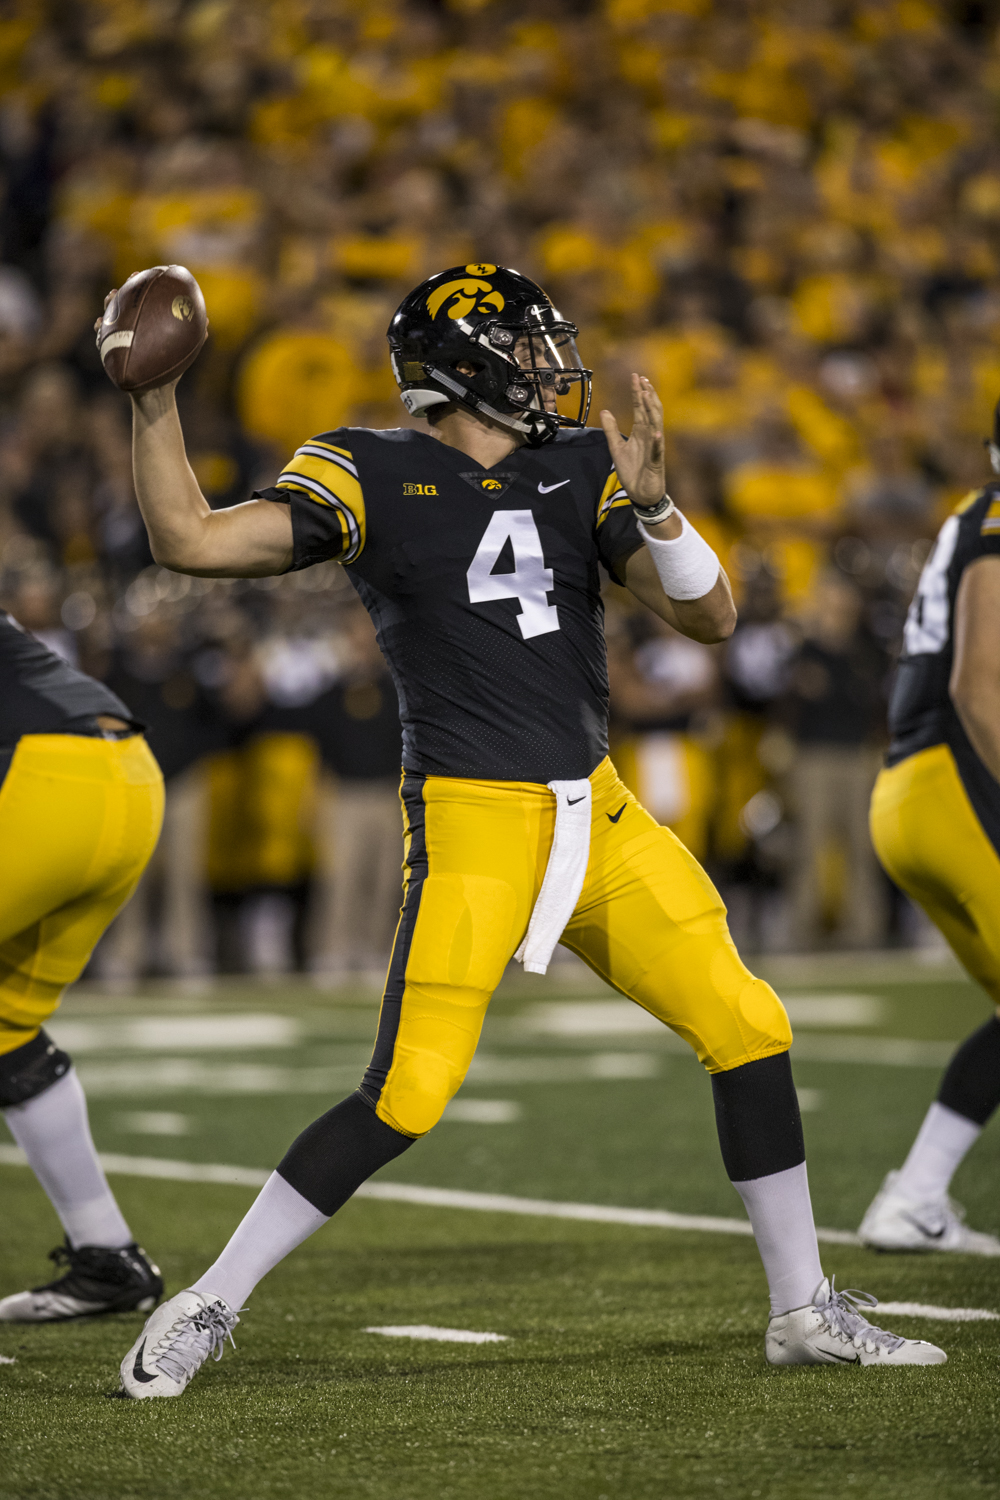 Iowa+quarterback+Nate+Stanley+throws+a+pass+during+Iowa%27s+game+against+Wisconsin+at+Kinnick+Stadium+on+Saturday%2C+September+22%2C+2018.+The+Badgers+defeated+the+Hawkeyes+28-17.